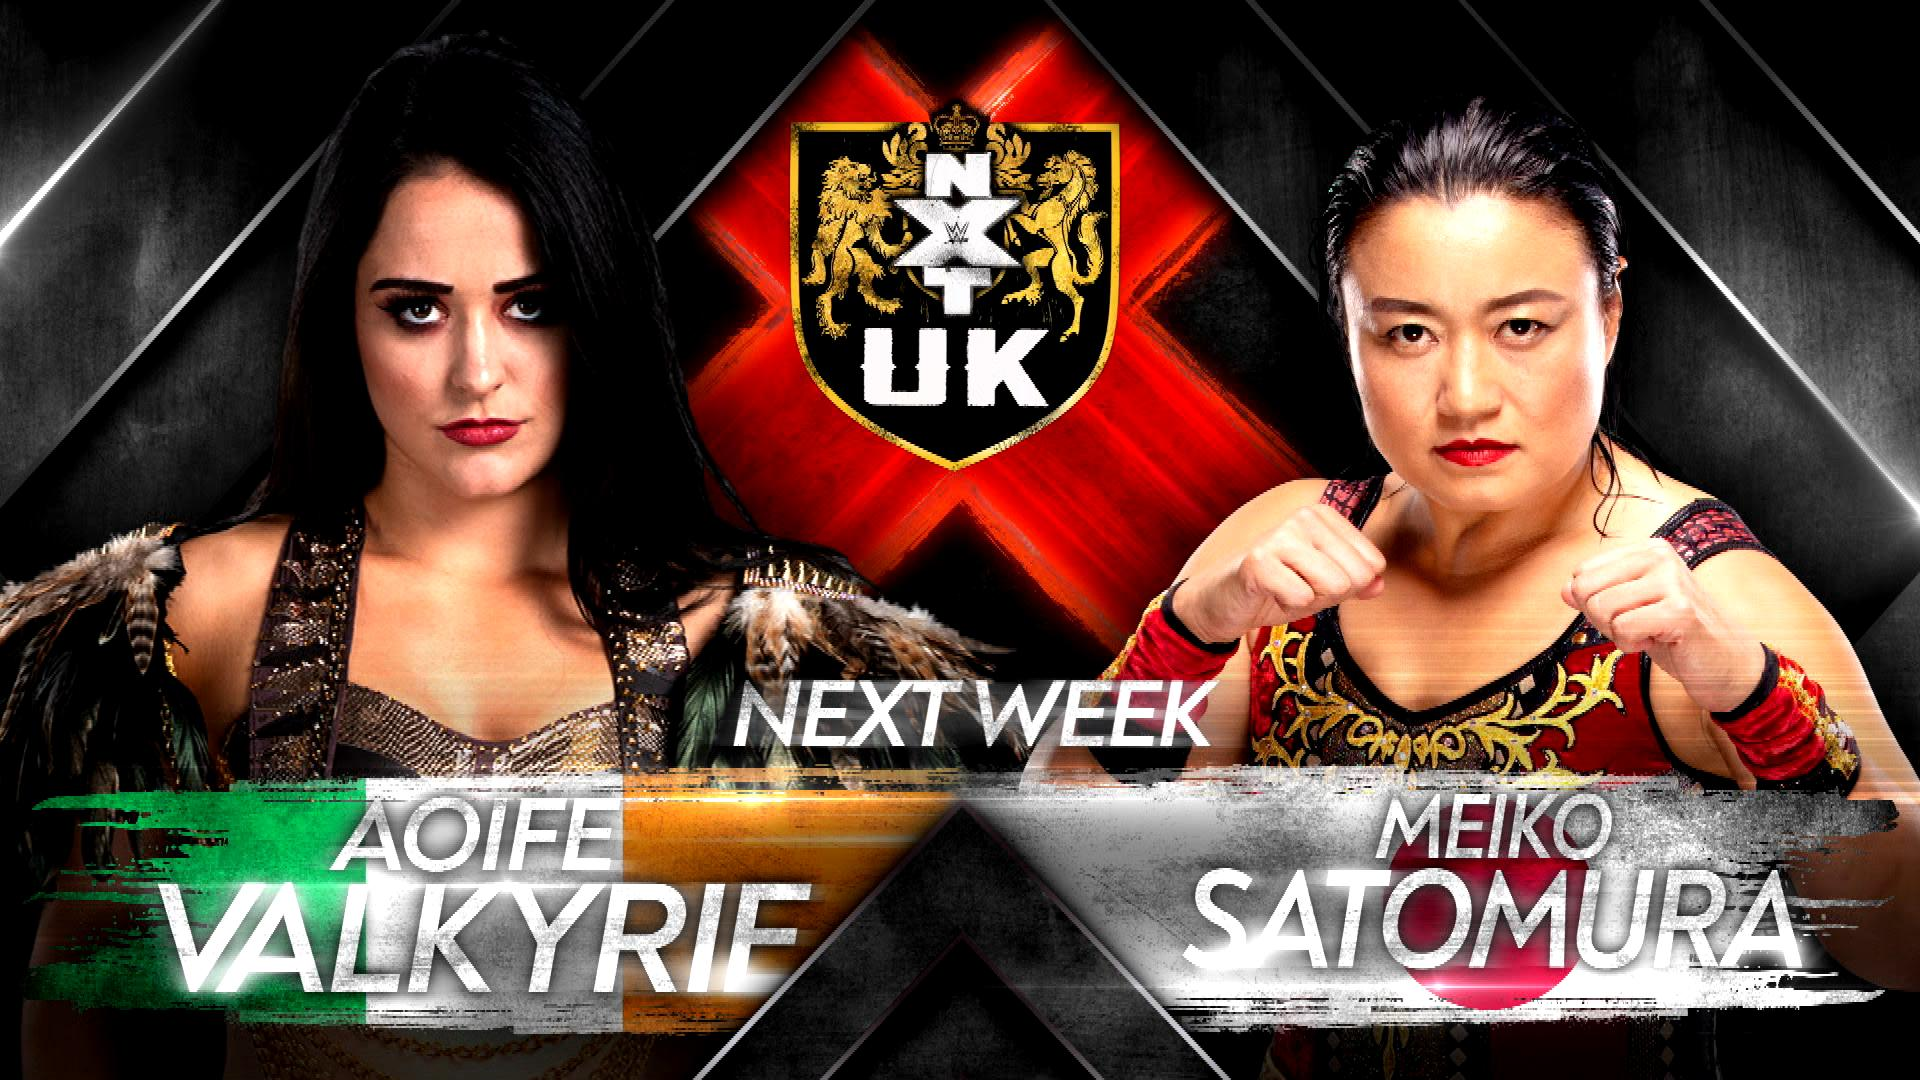 Aoife Valkyrie set to take on the final boss Meiko Satomura on next week's NXT UK